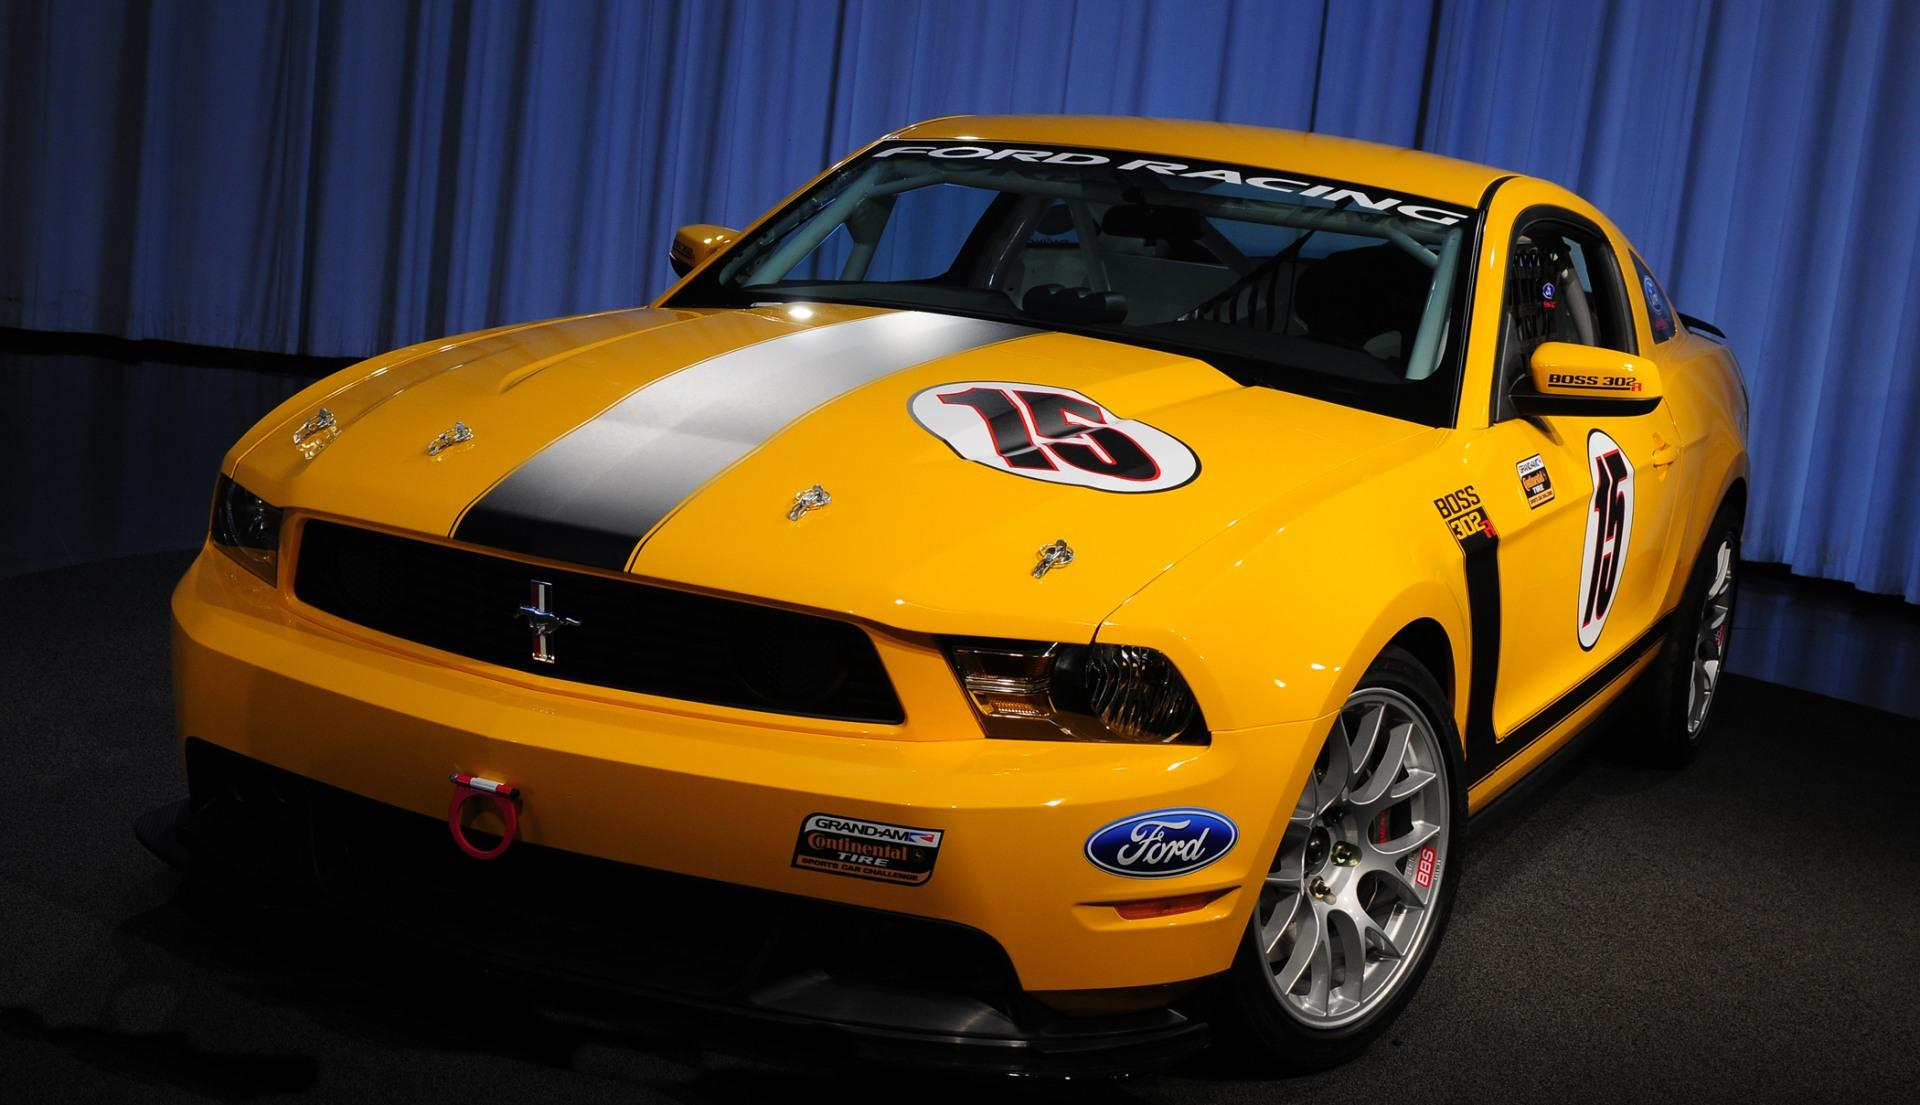 2011 ford mustang boss 302r news and information. Black Bedroom Furniture Sets. Home Design Ideas